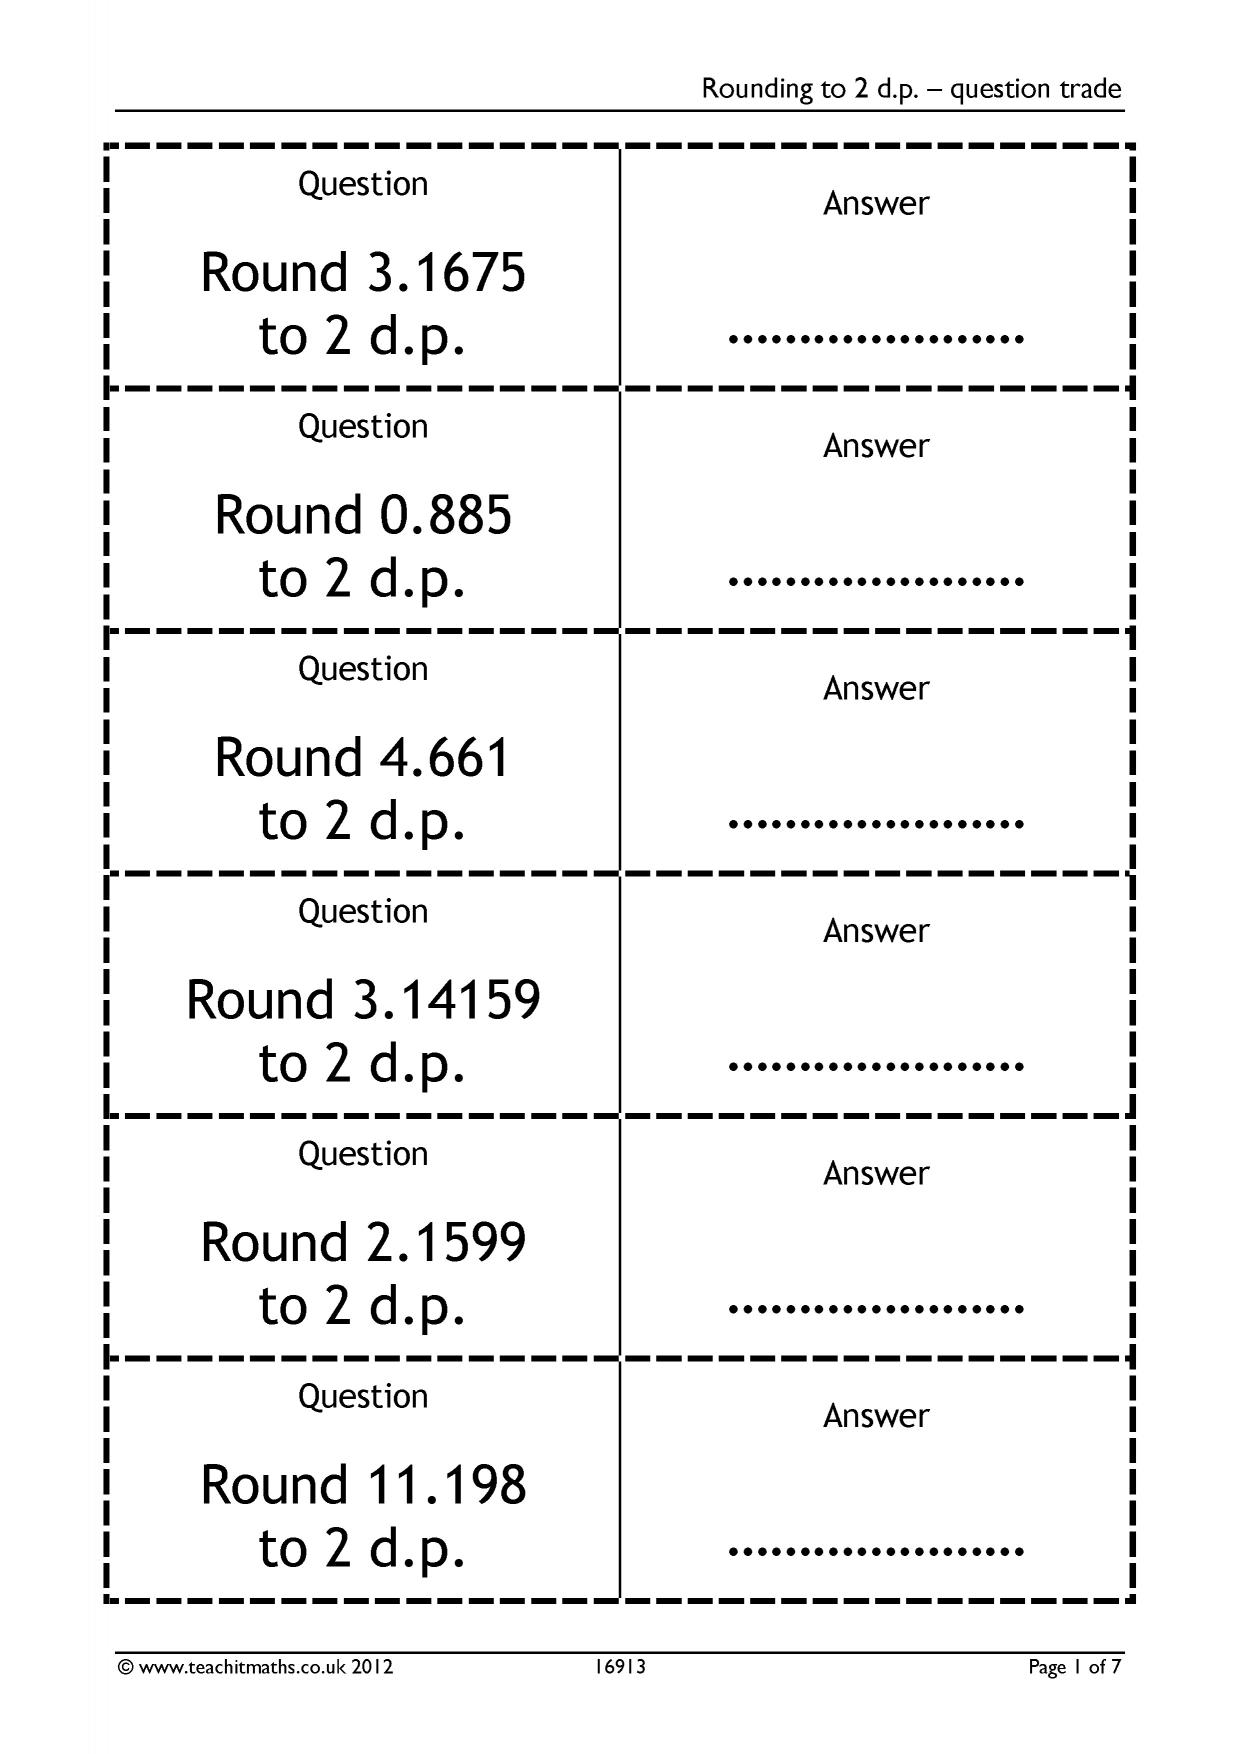 Ordering Fractions Decimals And Percentages Worksheet – Ordering Fractions and Decimals from Least to Greatest Worksheet